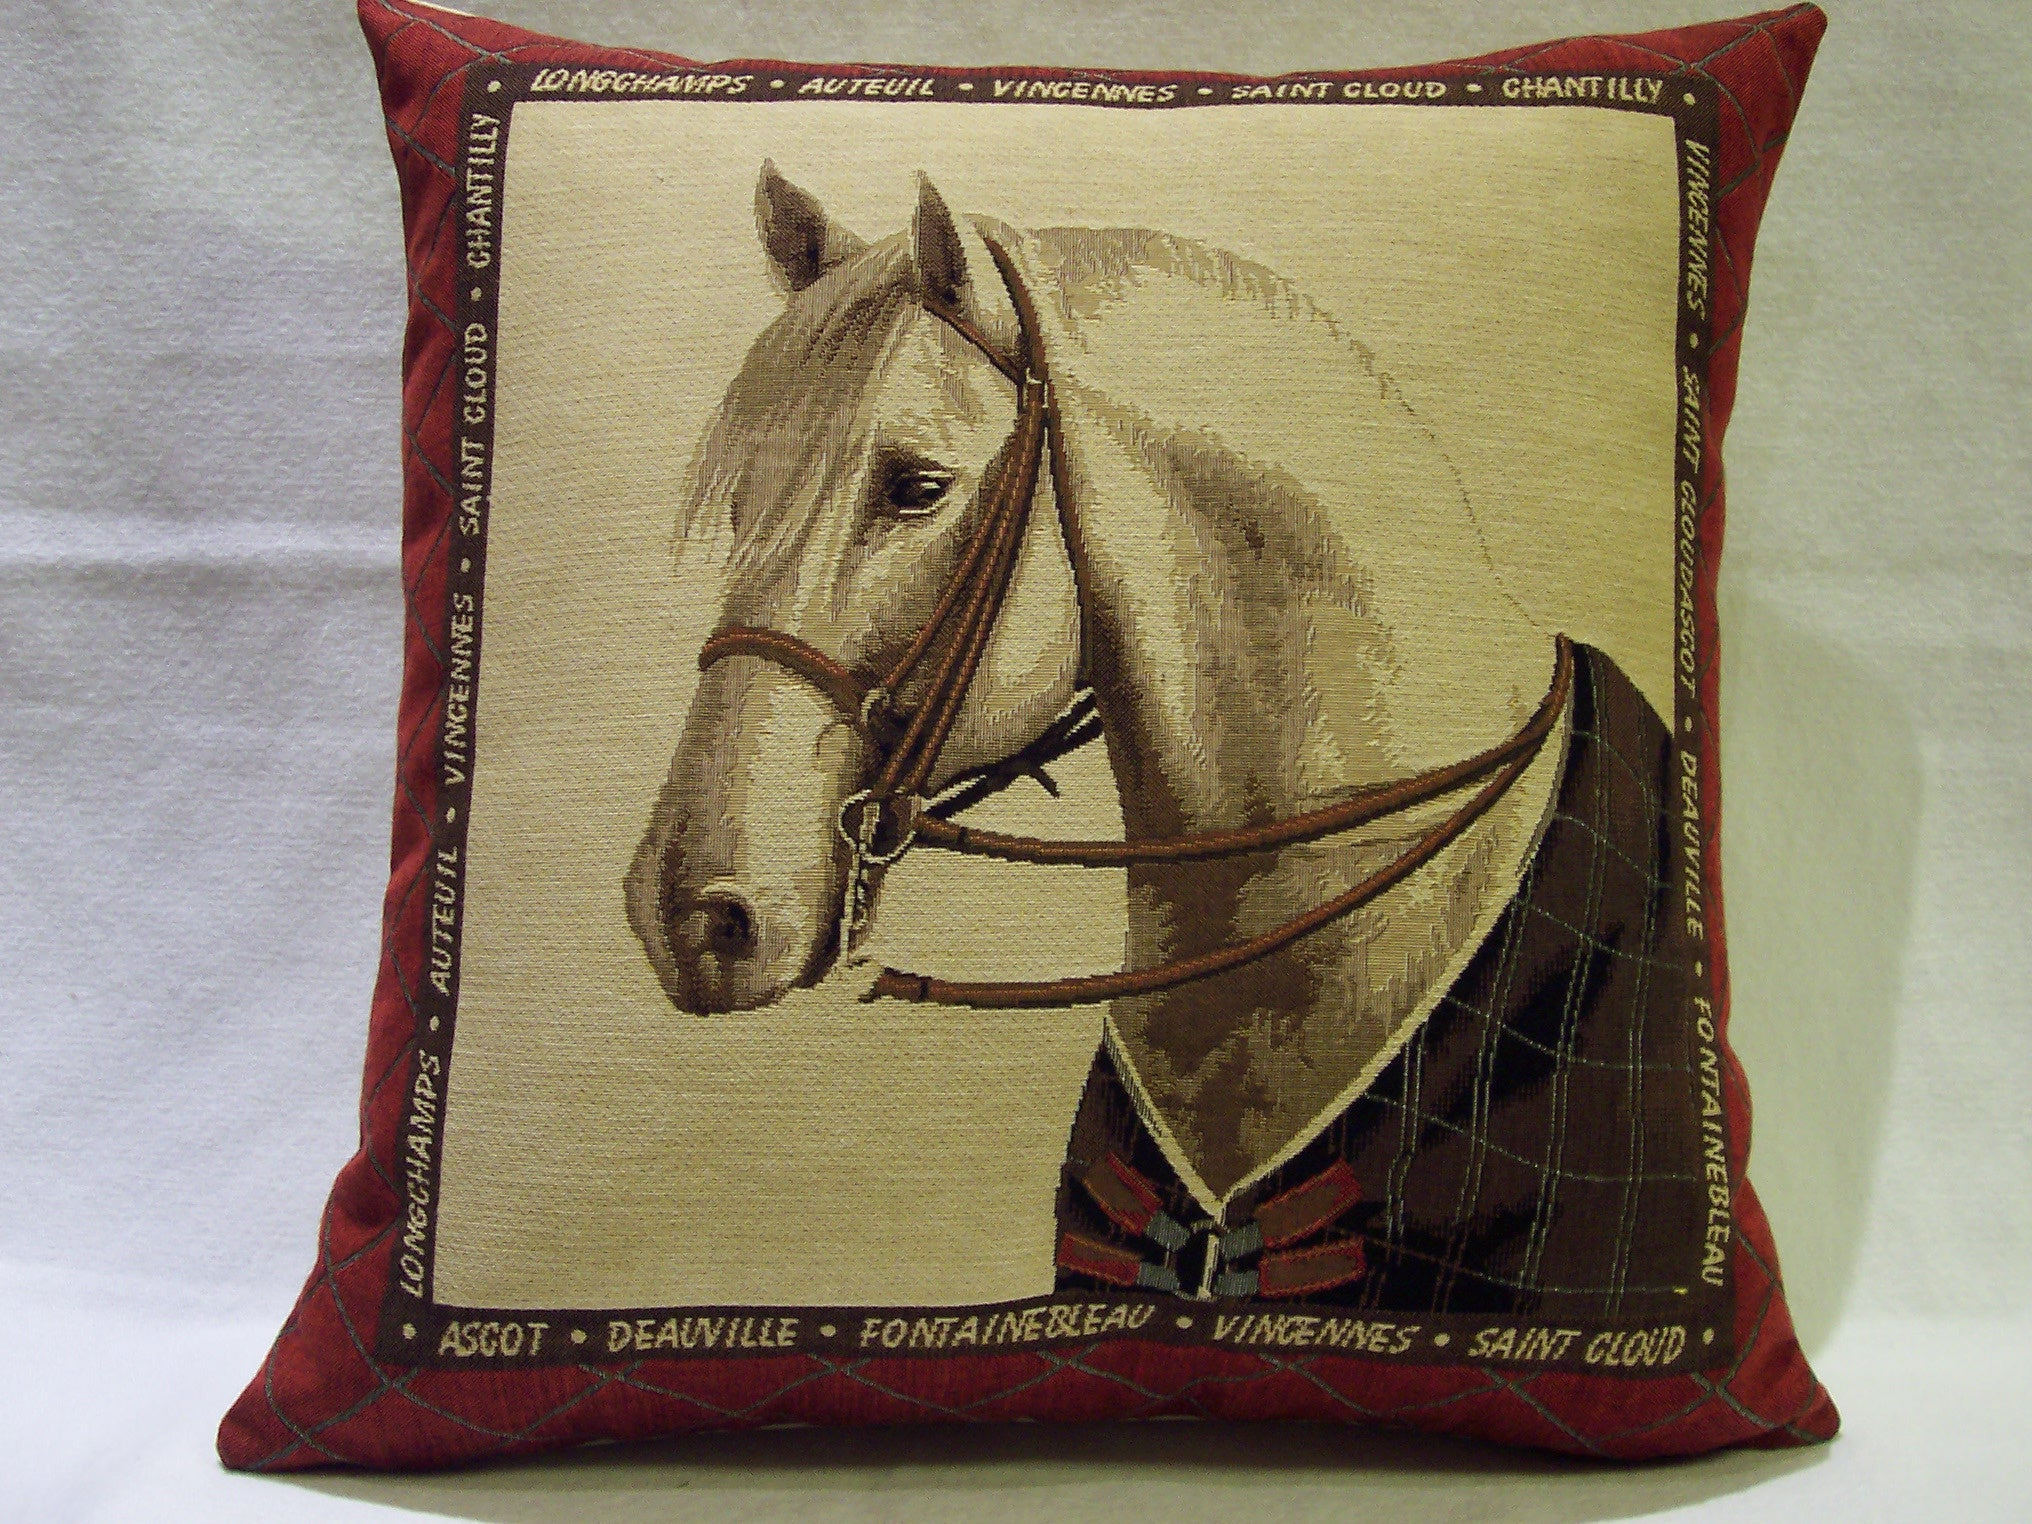 decorative nordicos item living cojines print artistry cotton linen home car new case horse decor room in cover pillow from cushion